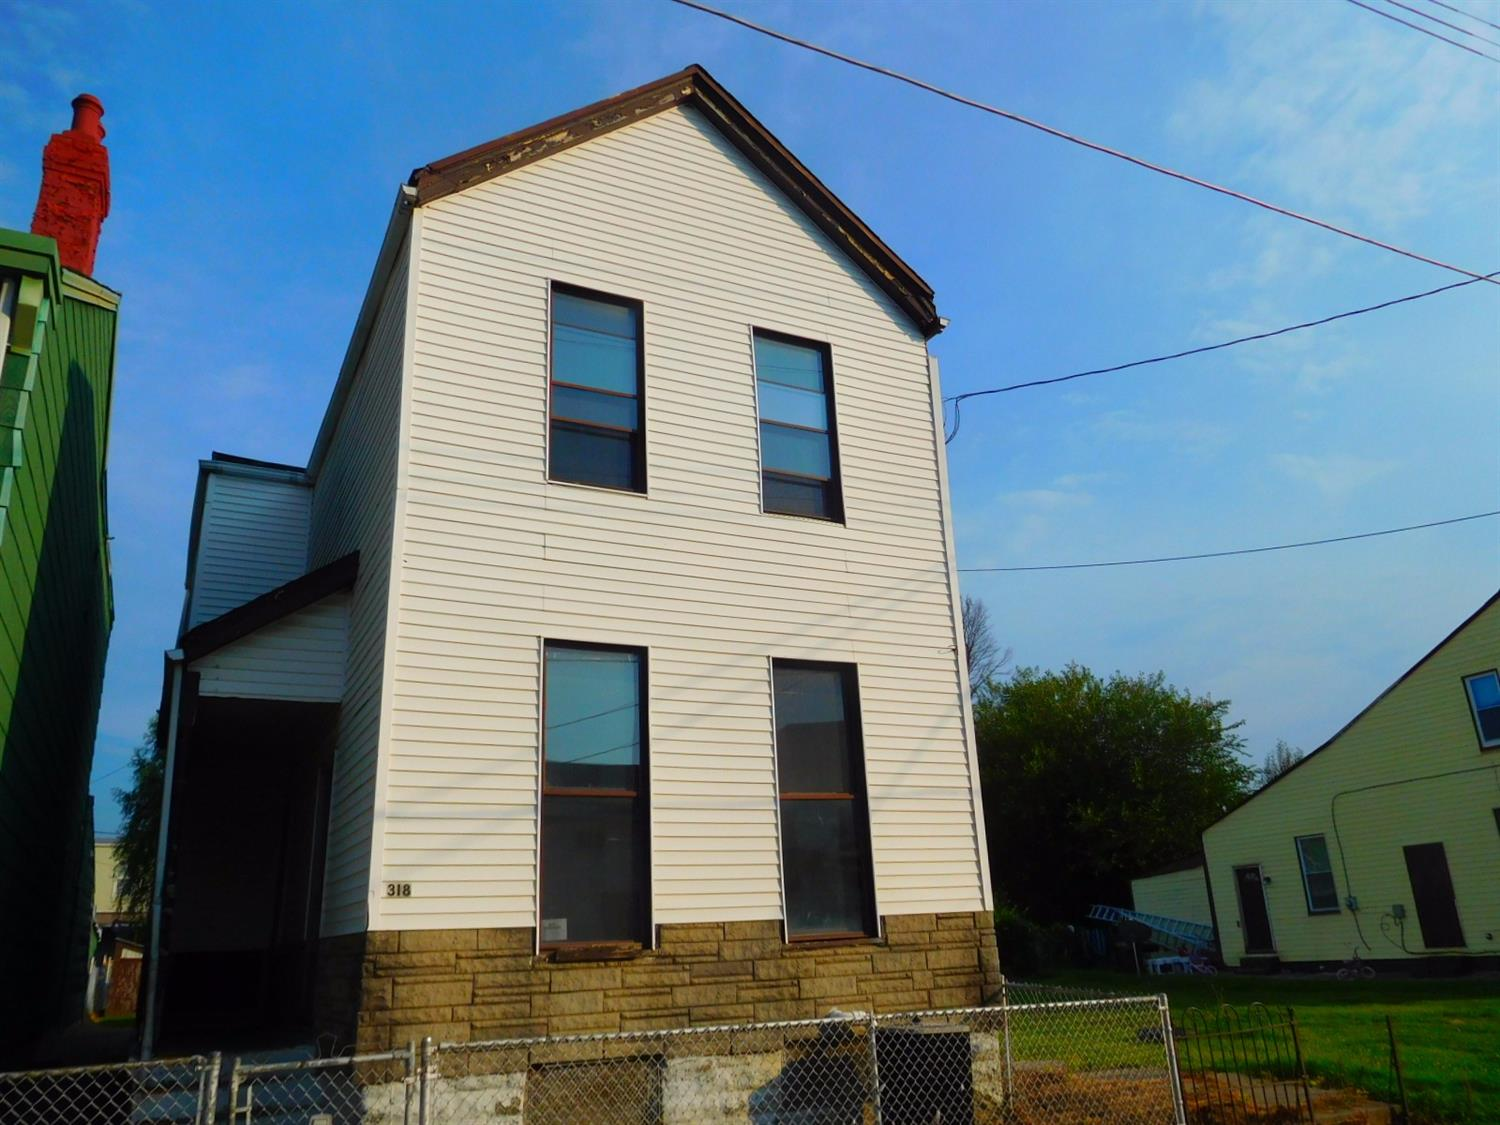 Photo 1 for 318 W 8th St Newport, KY 41071